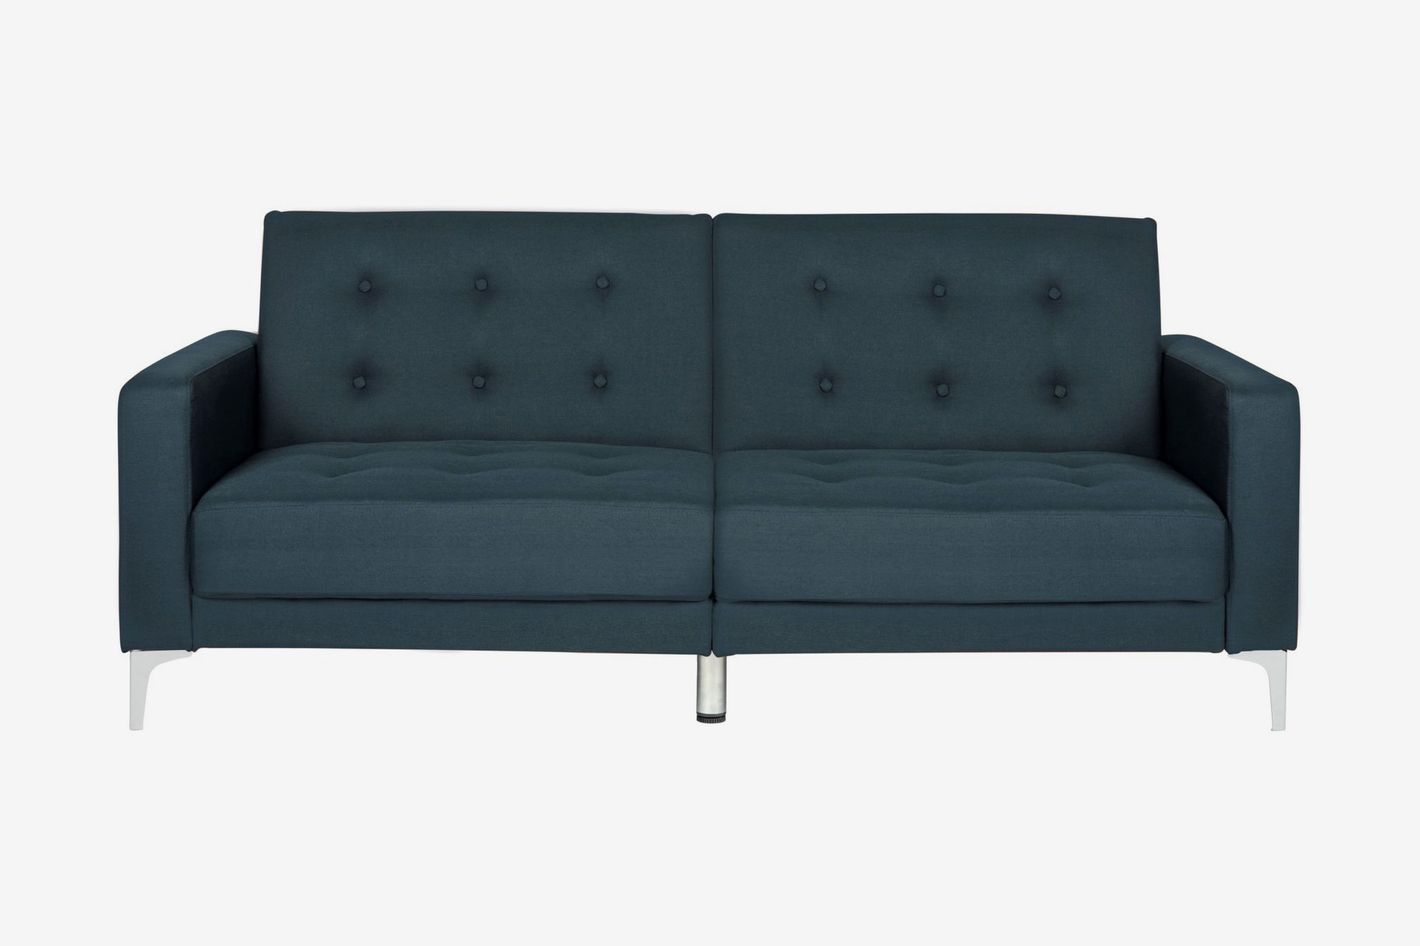 18 best sleeper sofas sofa beds and pullout couches 2018 rh nymag com Sleeper Sofas for Small Spaces IKEA Sleeper Sofa